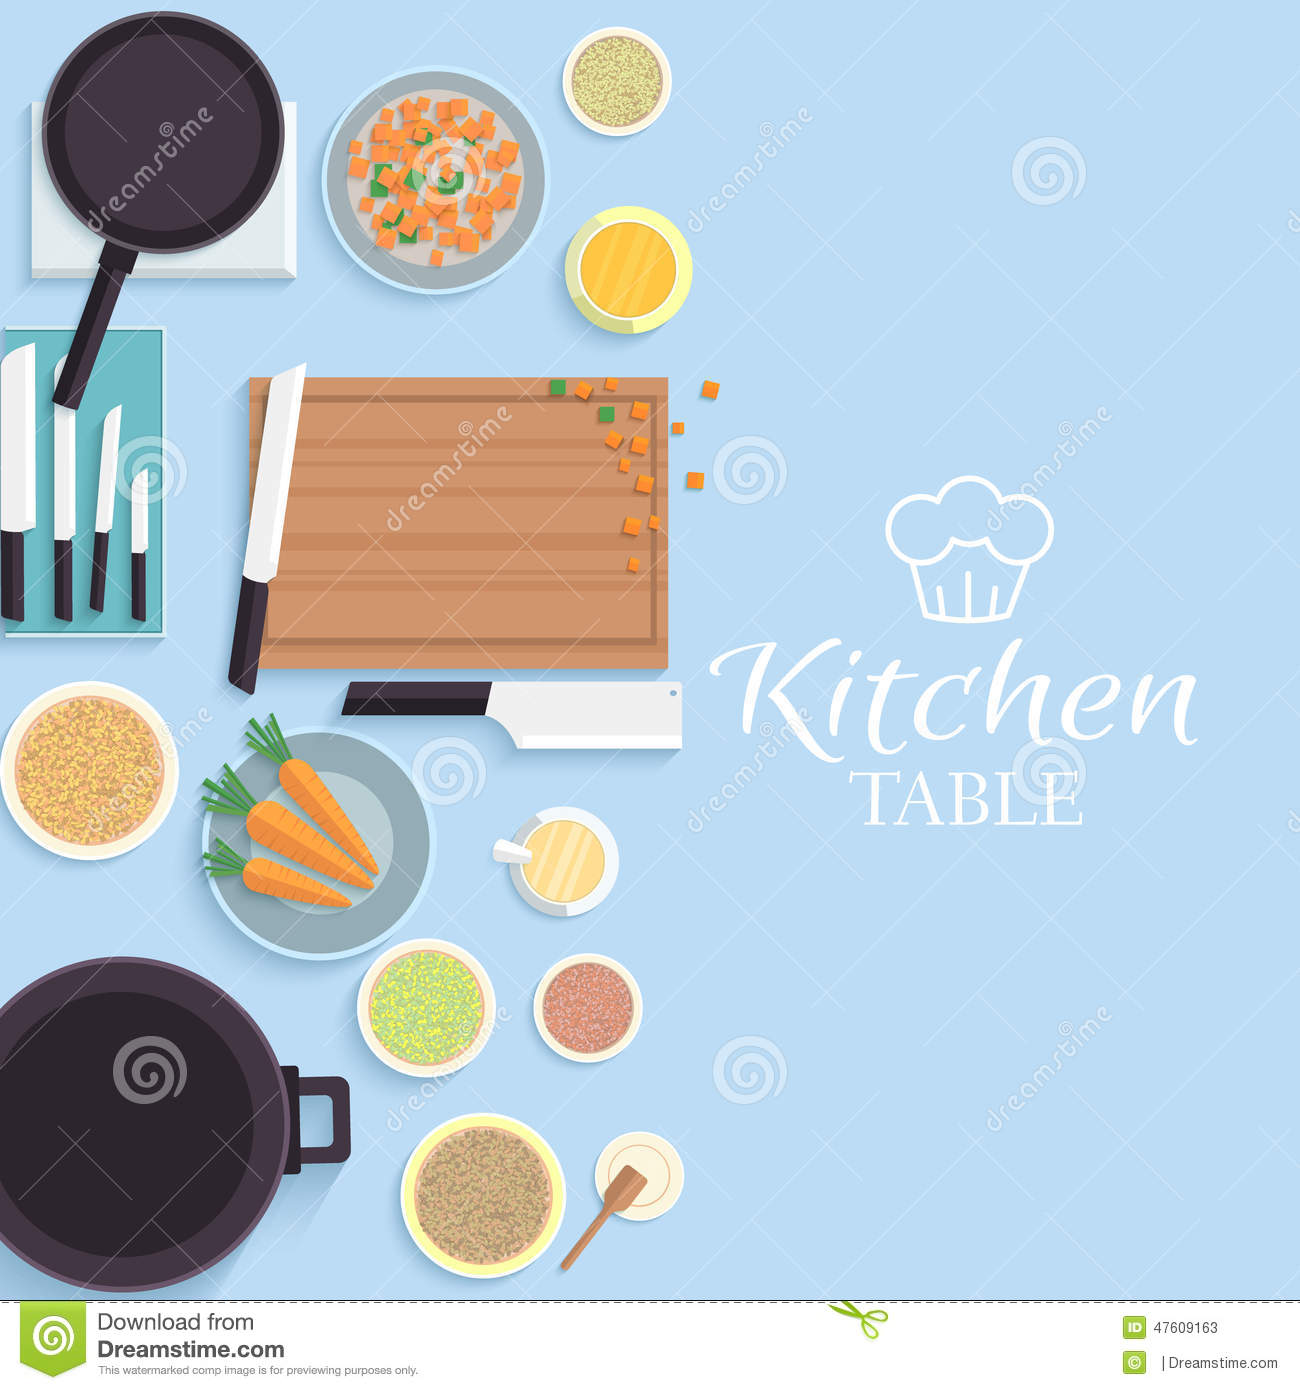 Flat kitchen table for cooking in house vector stock for Kitchen design vector